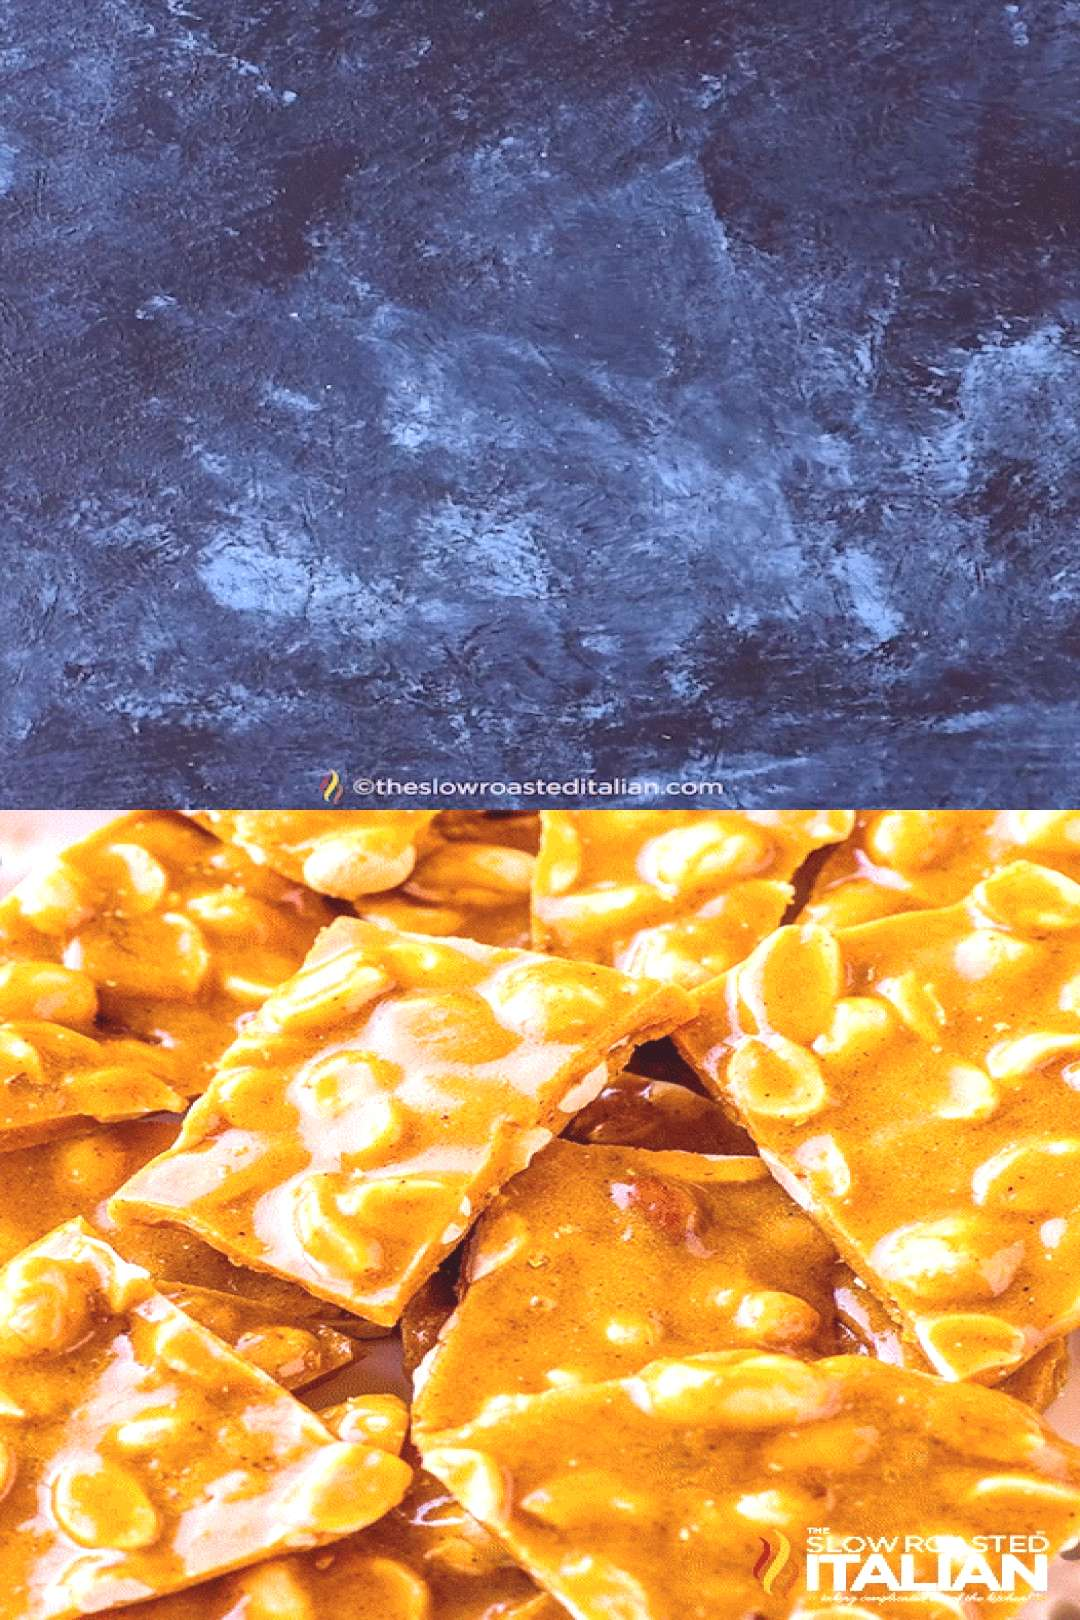 Easy Homemade Peanut Brittle This easy homemade Peanut Brittle is an old-fashioned sweet, hard cand